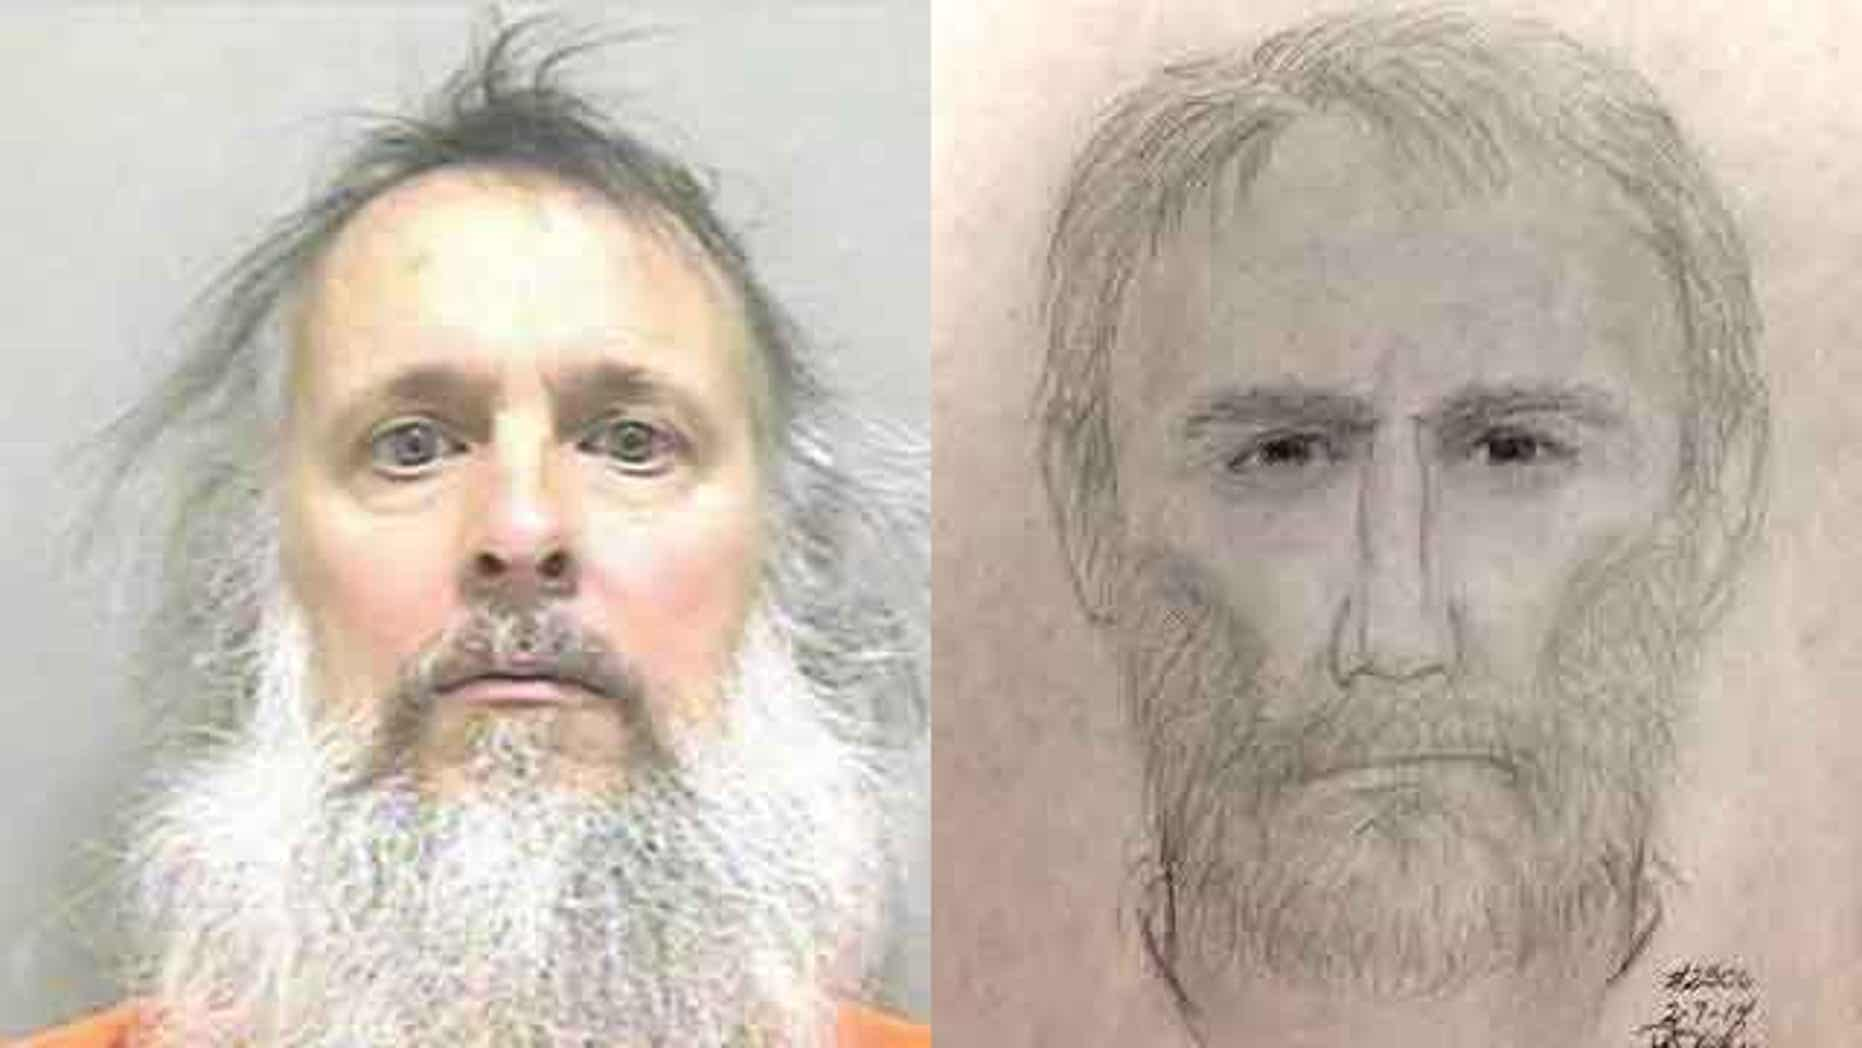 Charles Severance (L) was arrested in West Virginia on Thursday. On the right is the sketch of the suspect in the most recent of three unsolved murders in Alexandria.